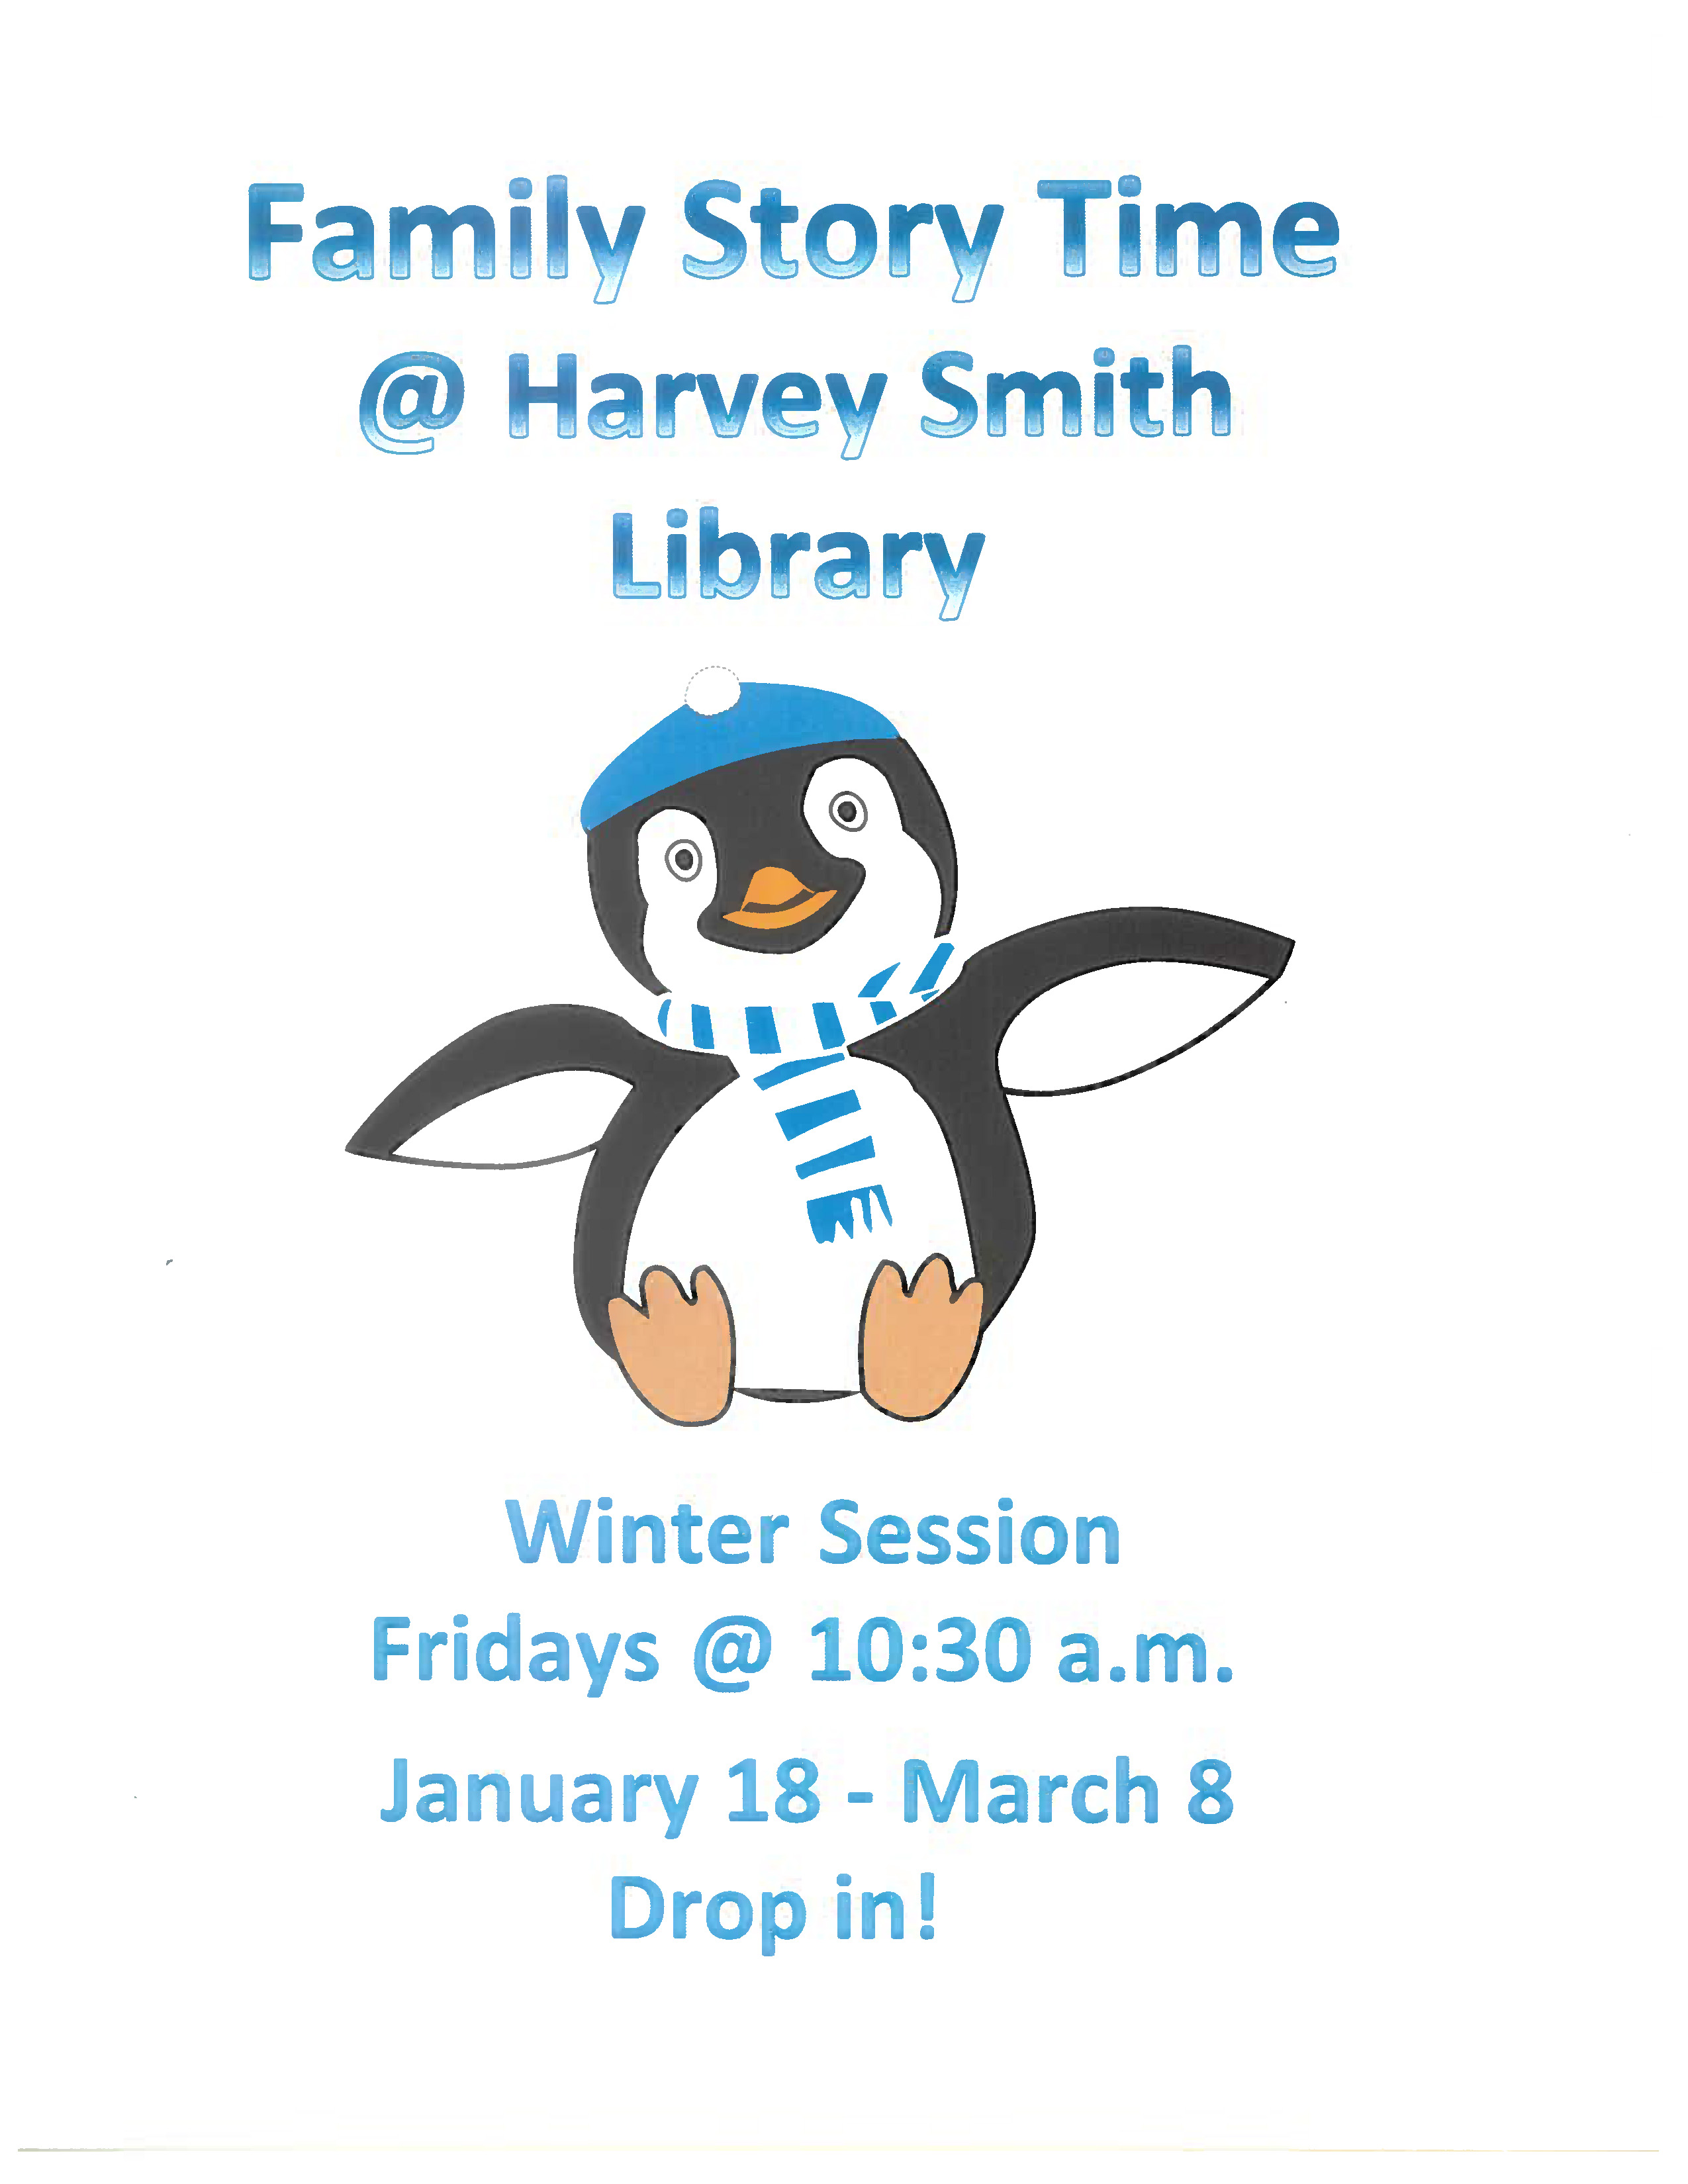 Family story time for kids ages 3-5 at 10:30 am on Fridays at Harvey Smith Library